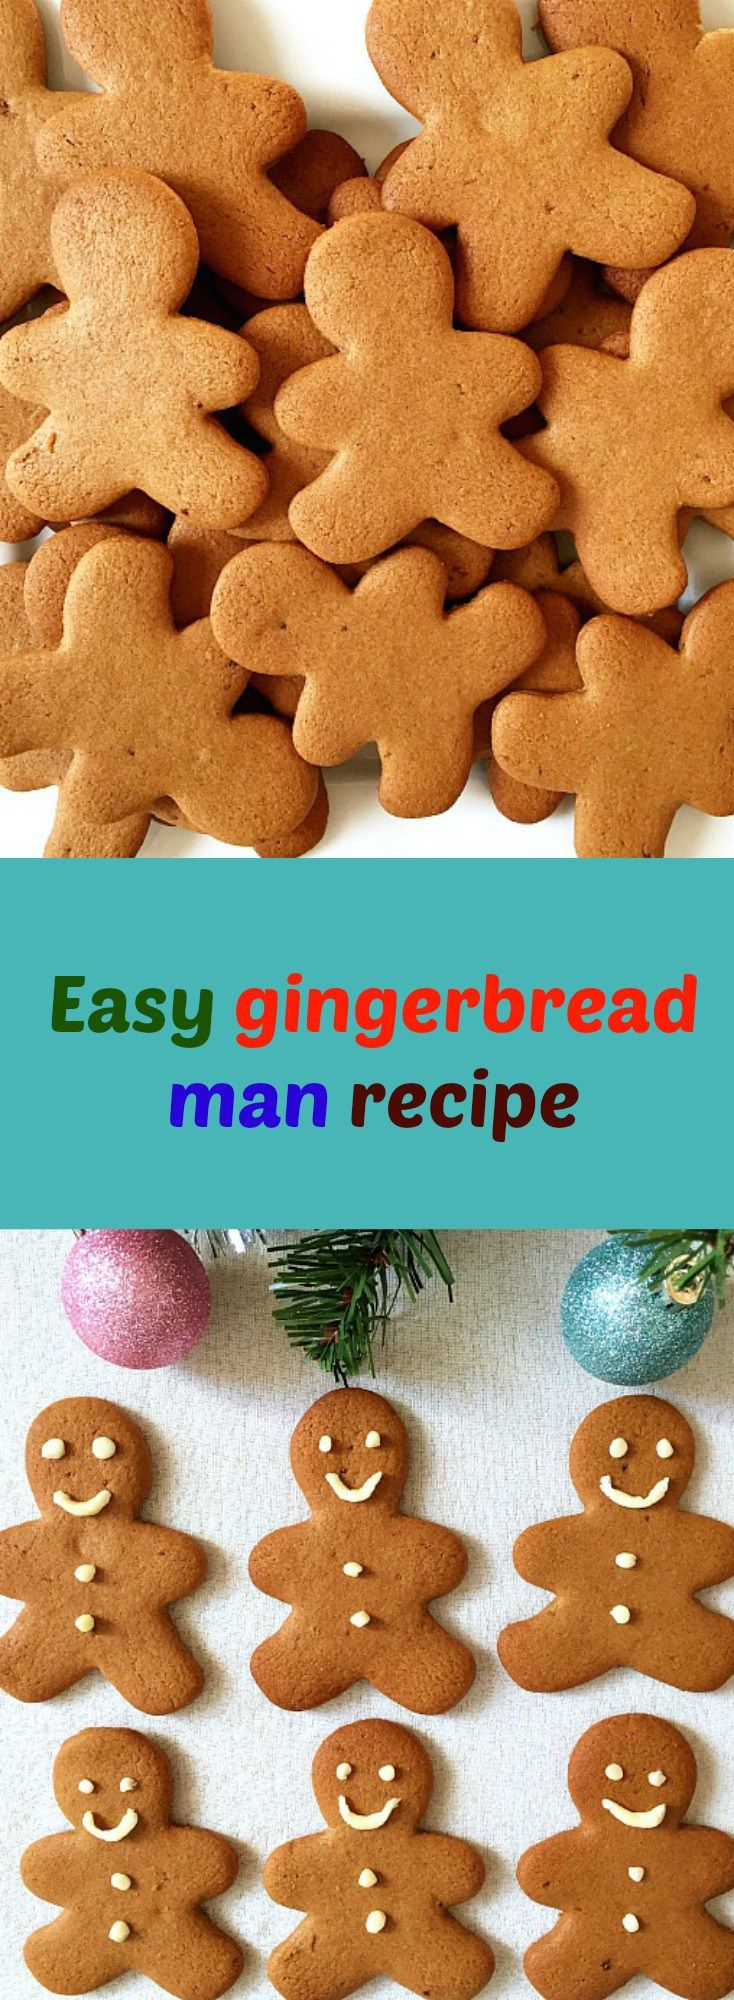 Easy gingerbread man recipe, a fun way to get Christmas ready. Little and big ones will just love this unmistakable christmassy taste.